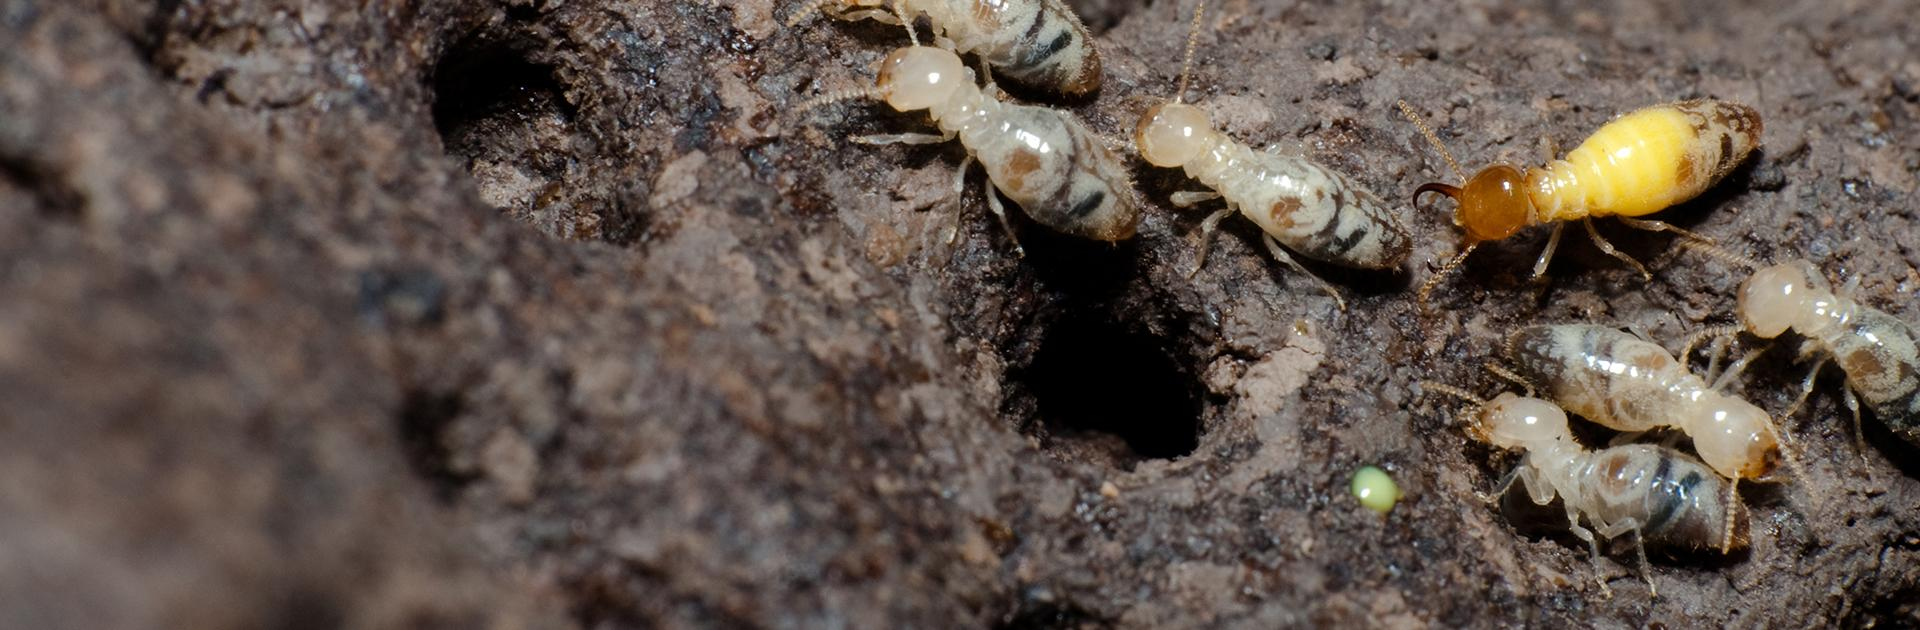 formosan termites damaging wood